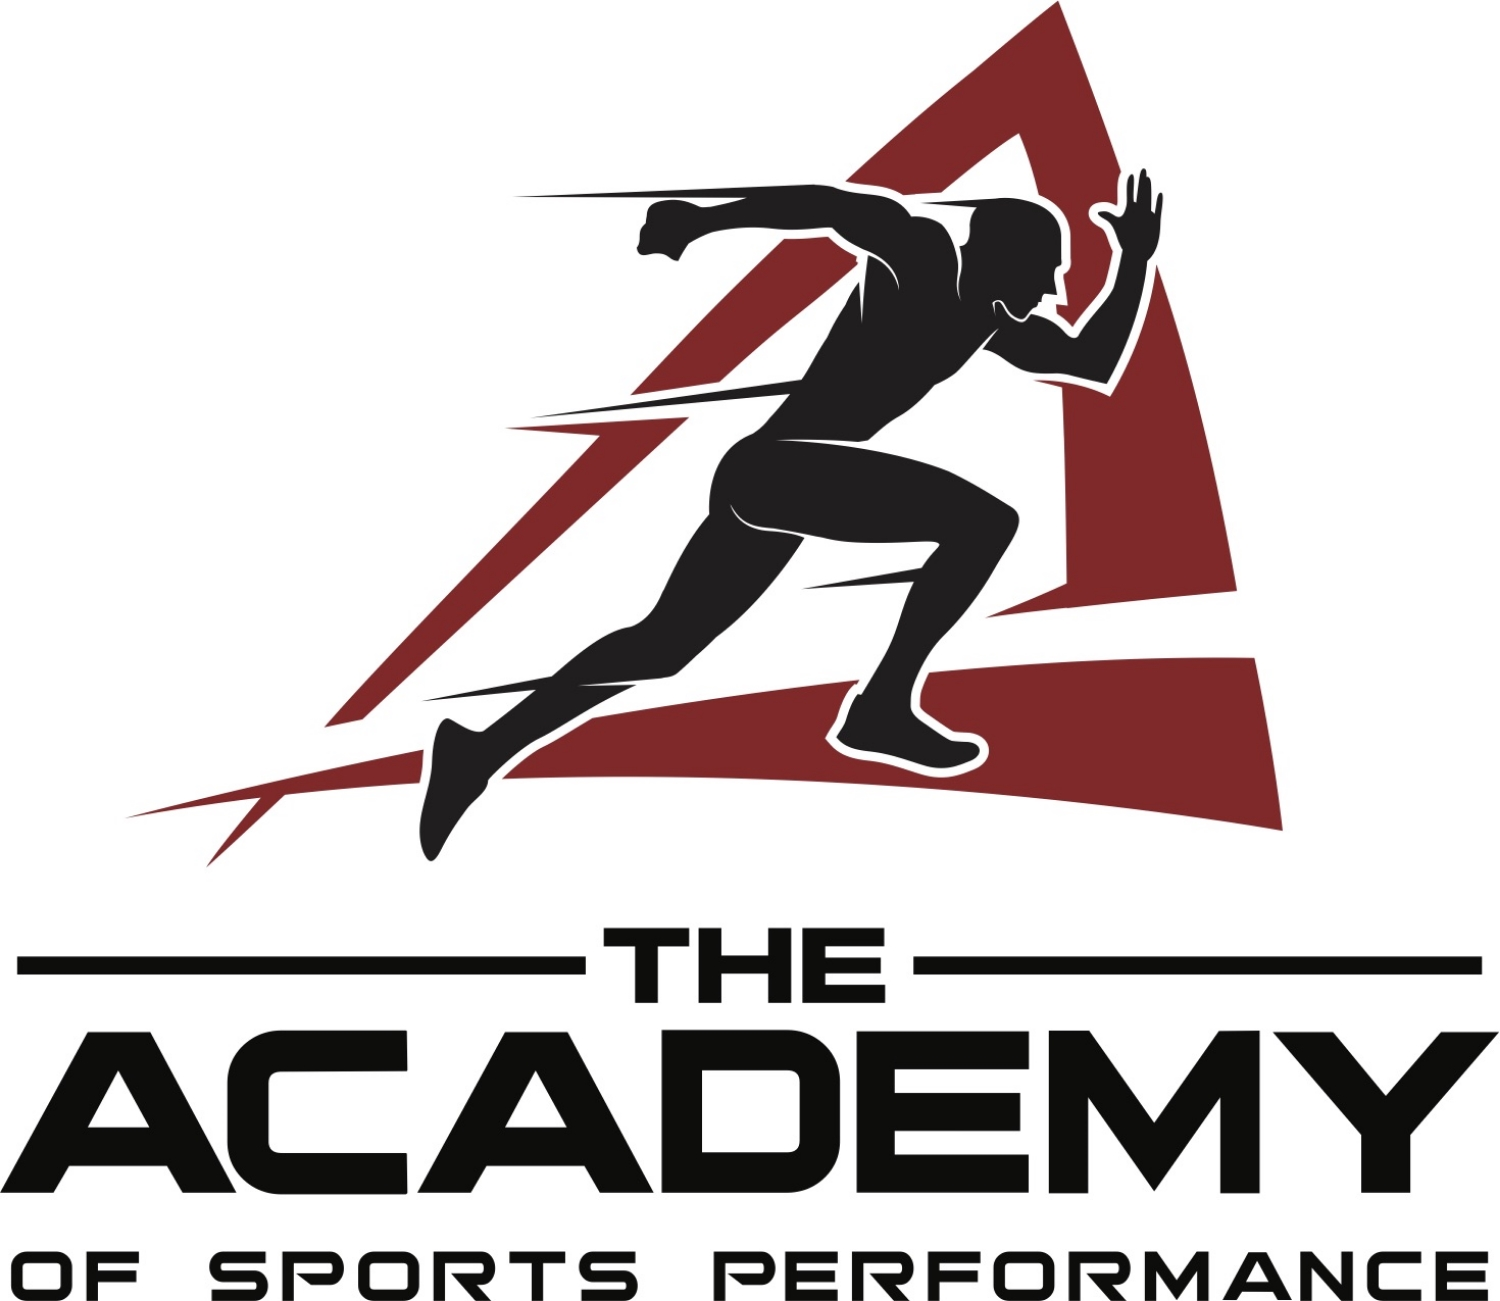 The Academy of Sports Performance